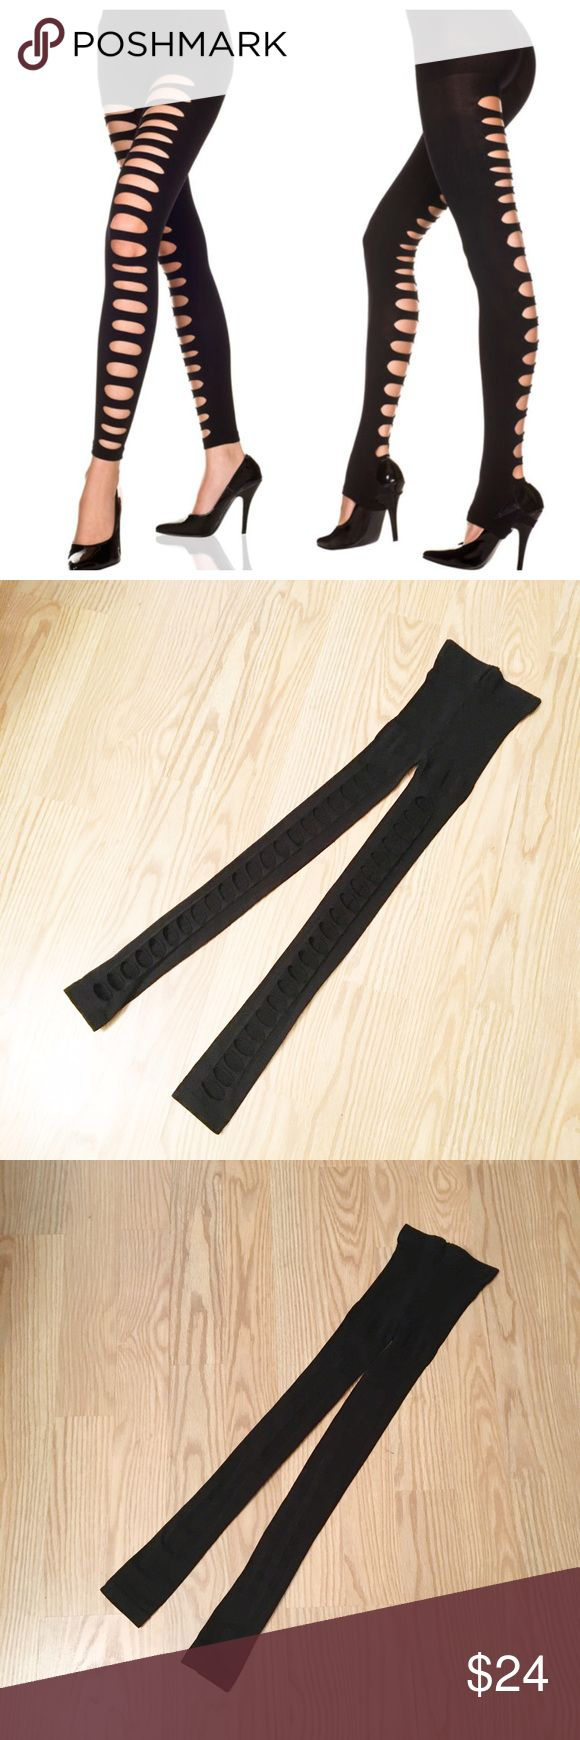 """NWOT slashed ripped tights NWOT laser cut slashed ripped black tights 